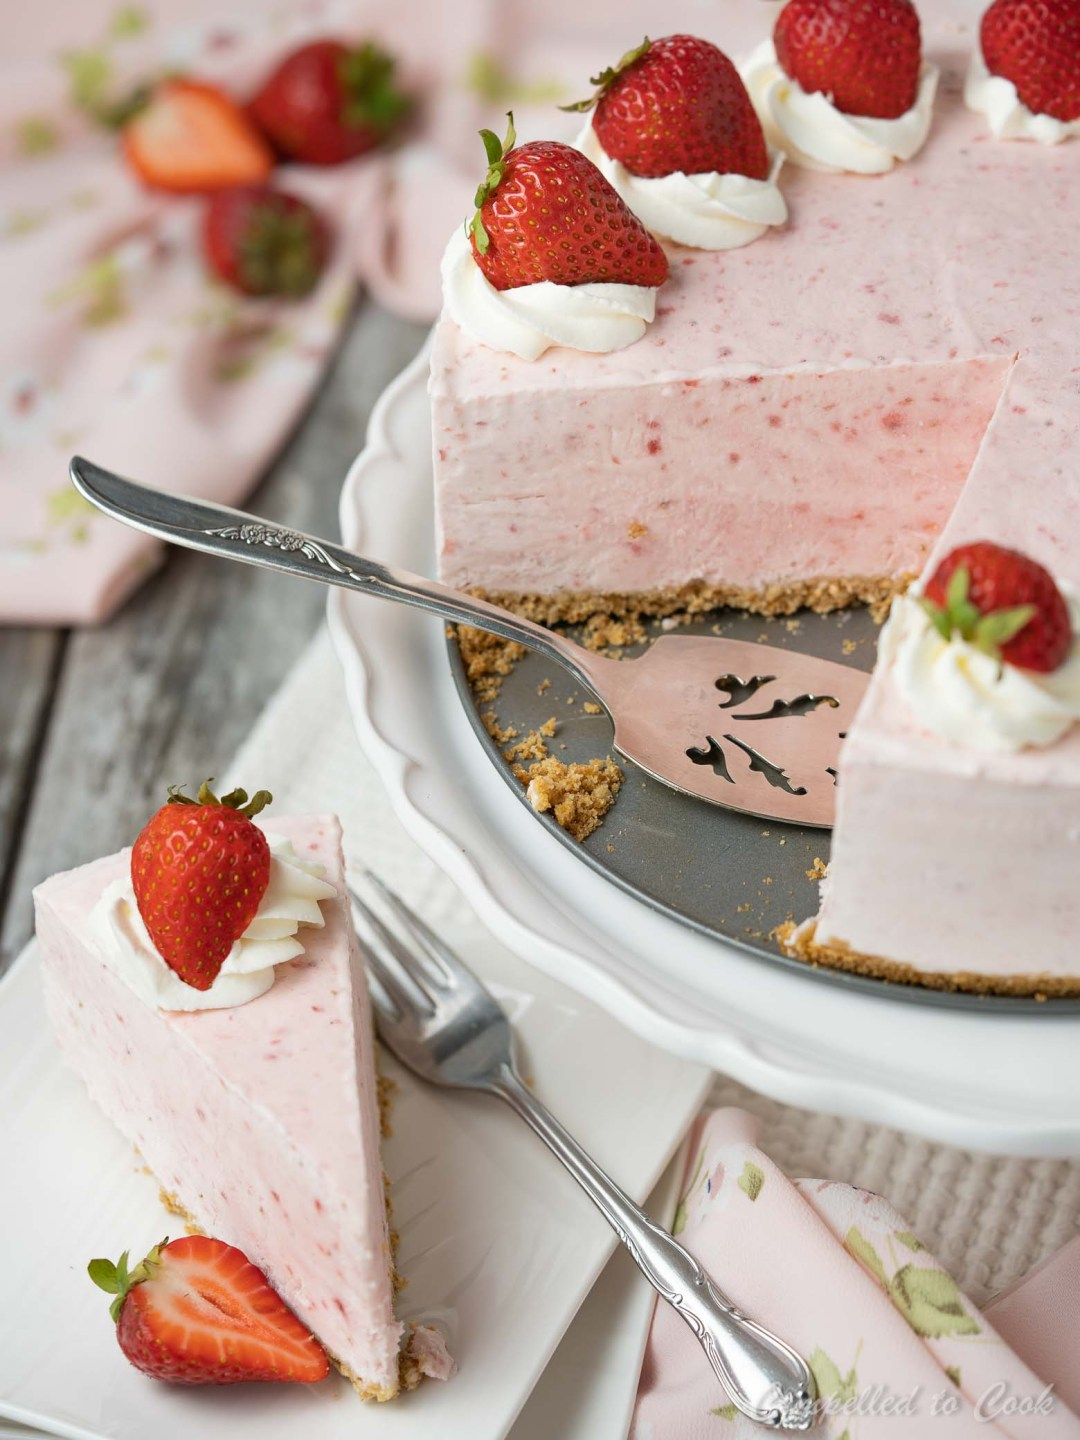 Frozen Yogurt Strawberry Cake with a large wedge cut out and resting on a serving plate.